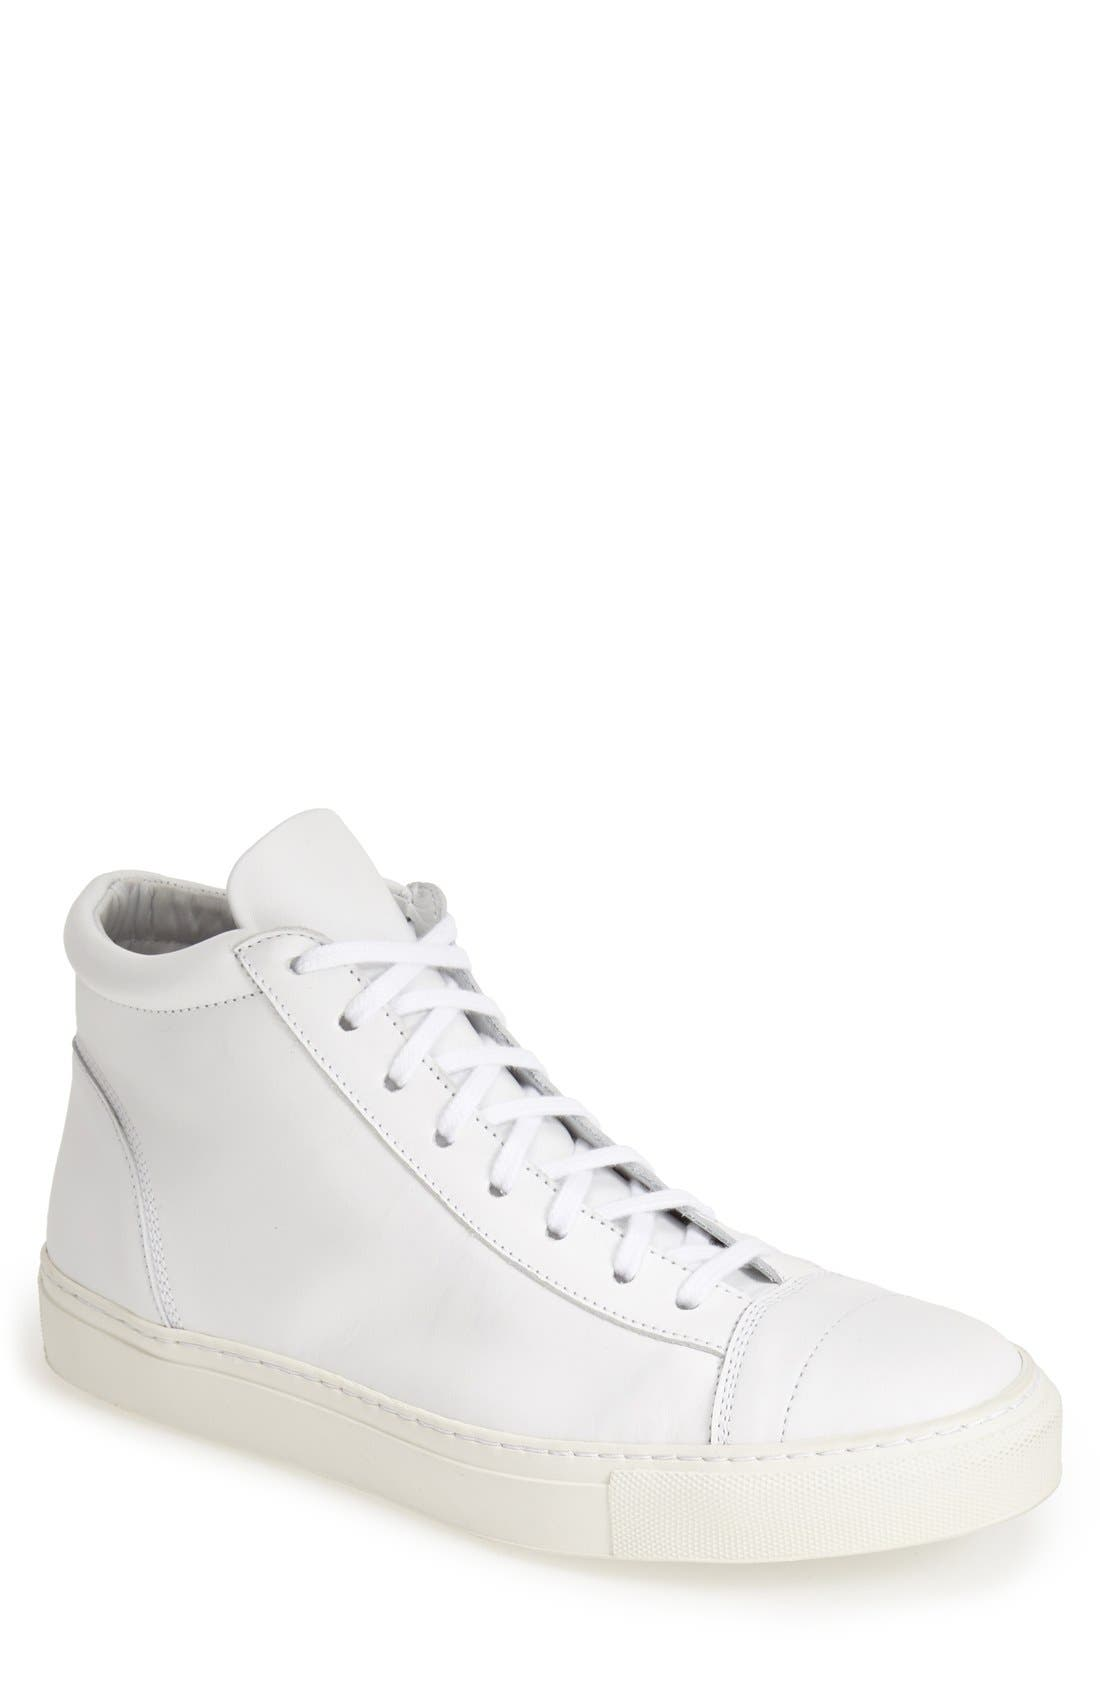 'Jorge' Leather Sneaker, Main, color, 100